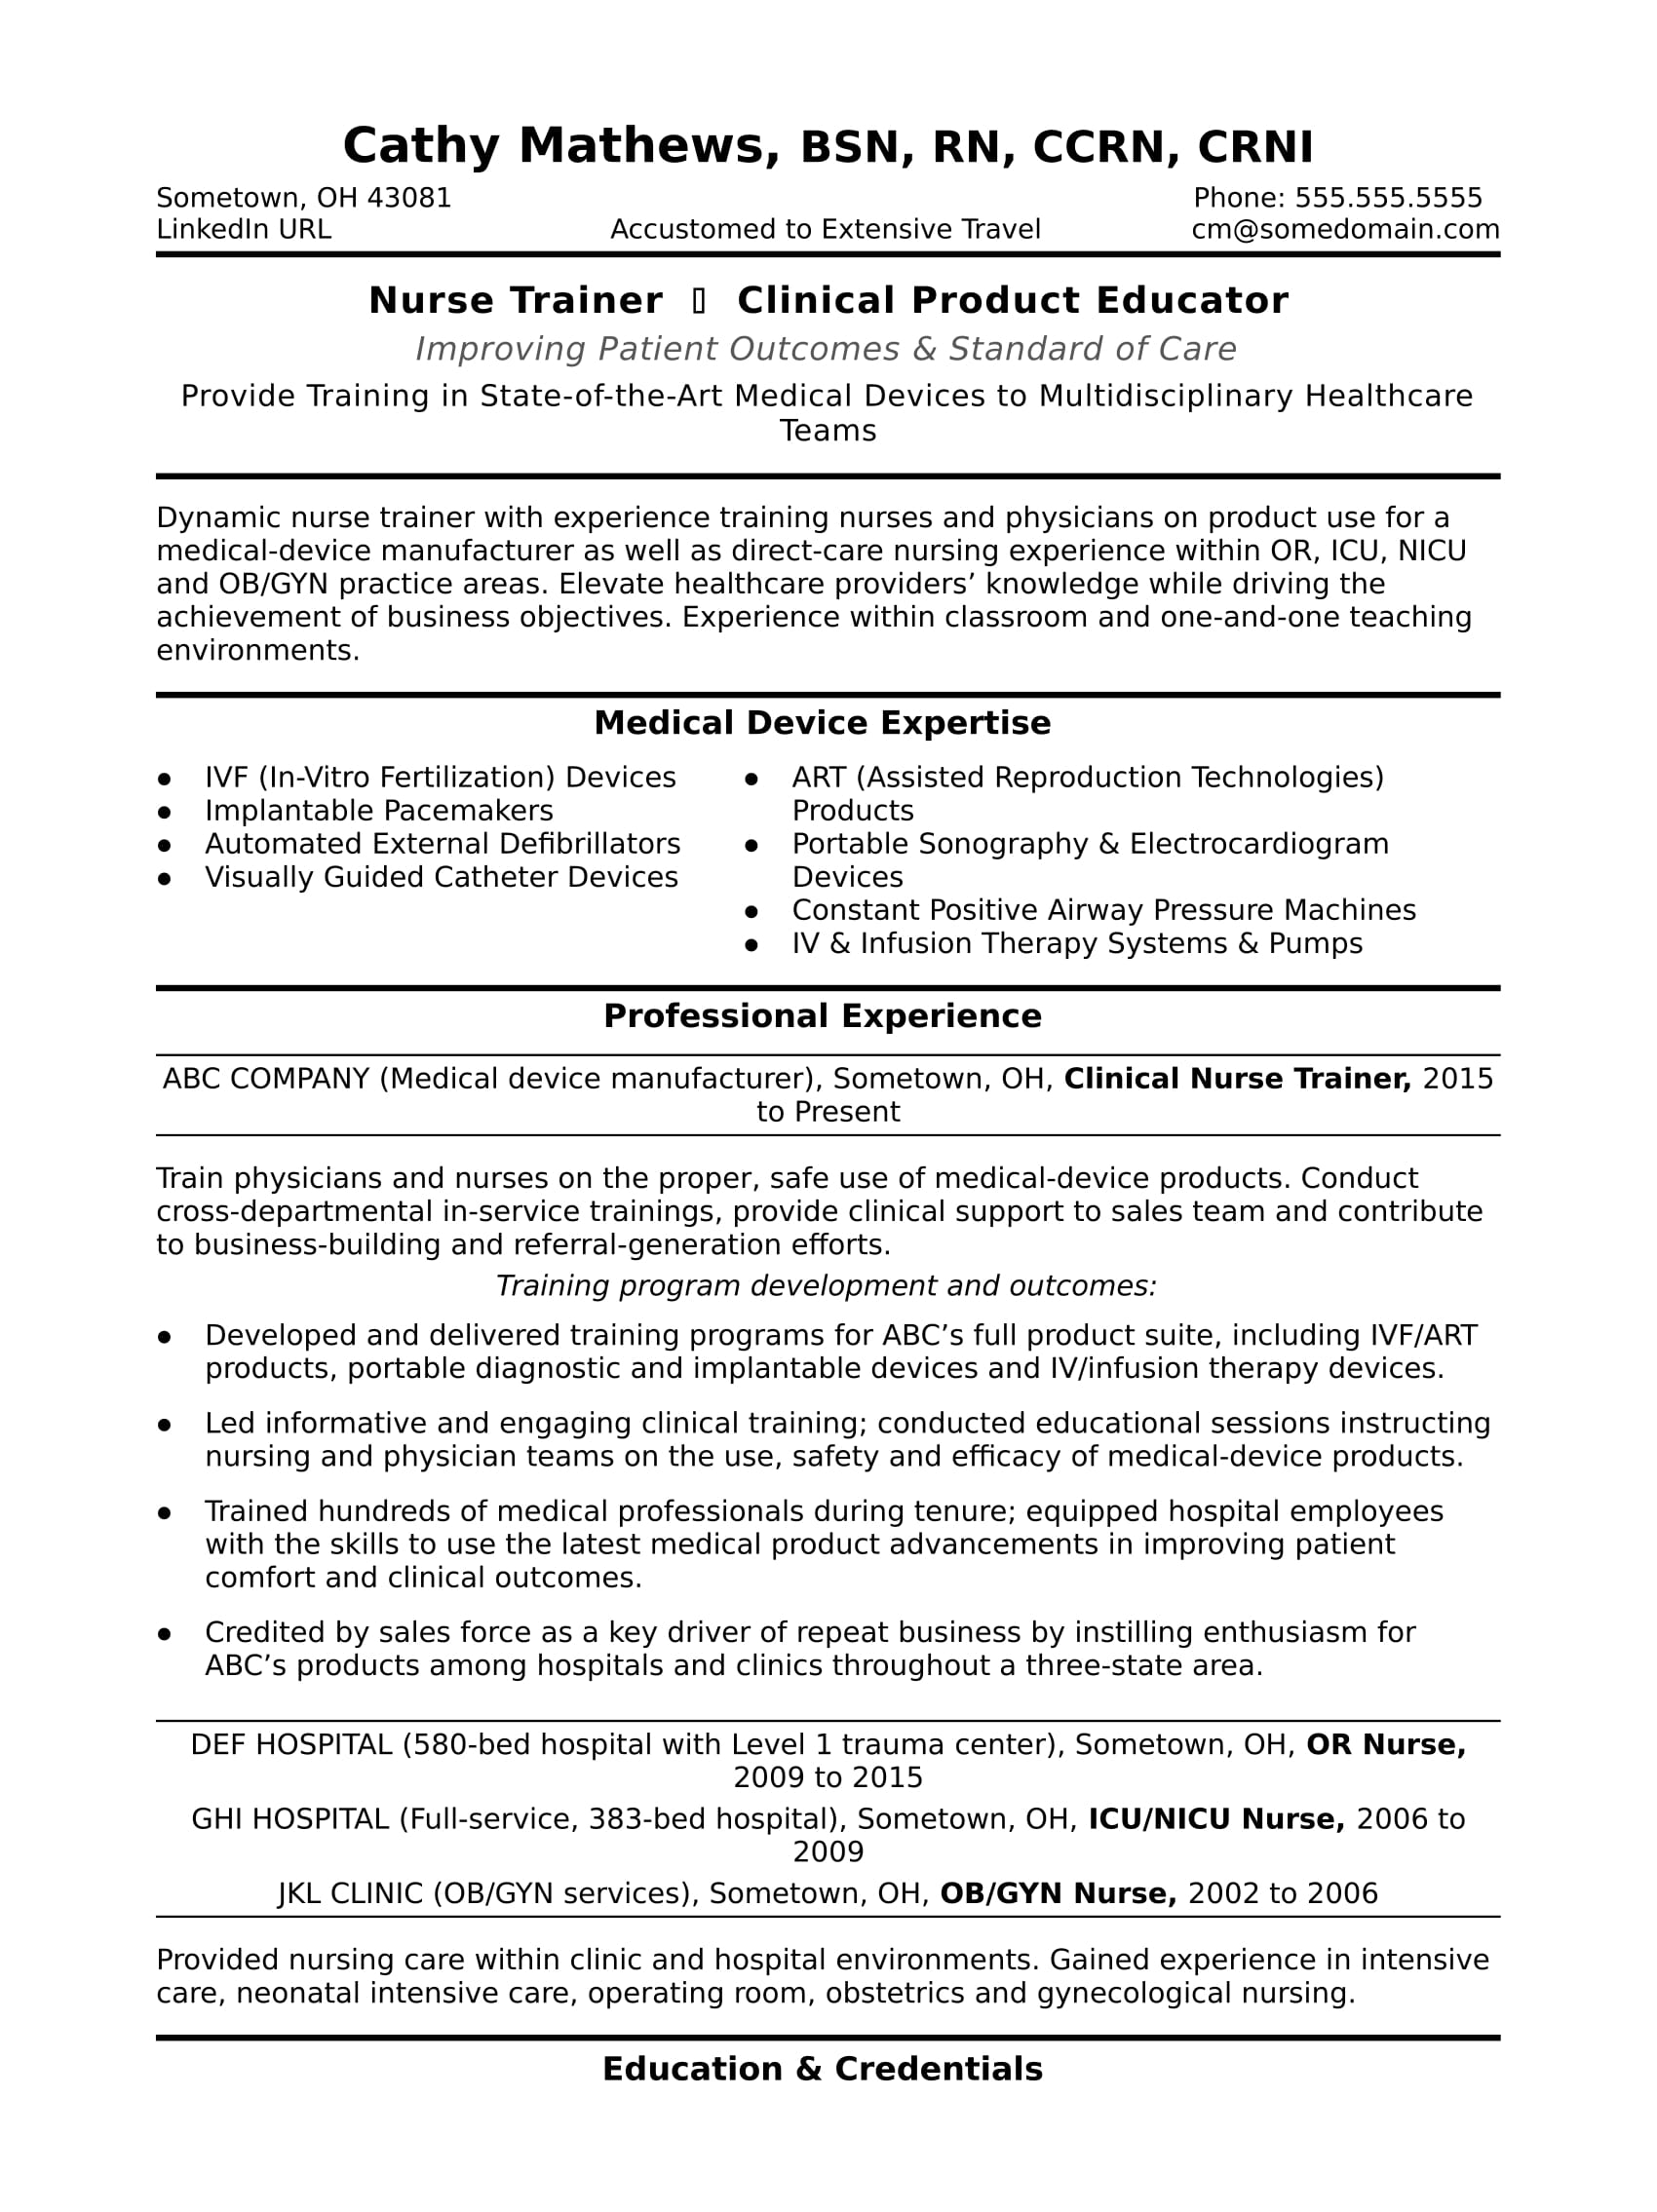 Nurse Trainer Resume Sample Monster Com